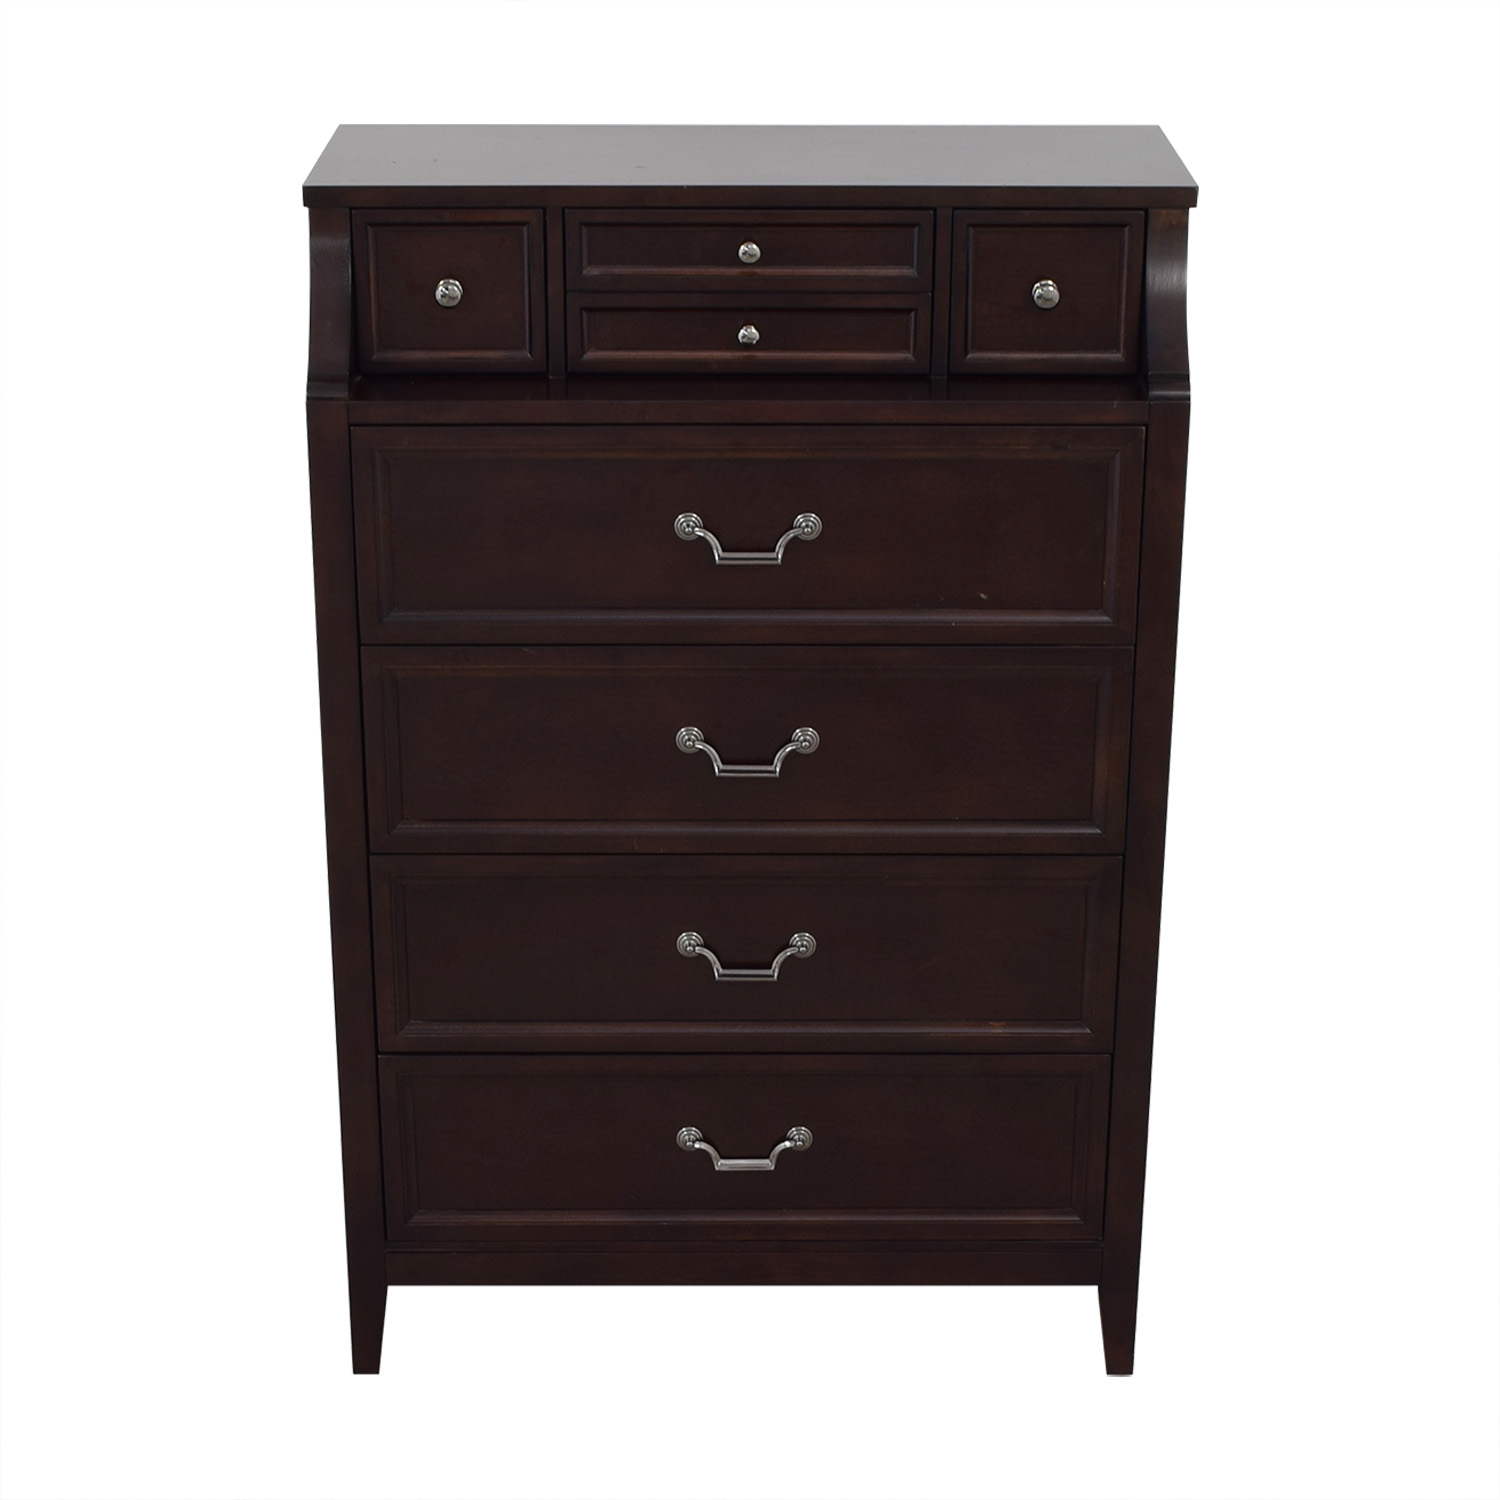 Raymour & Flanigan Raymour & Flanigan Keaton Chest Dresser on sale